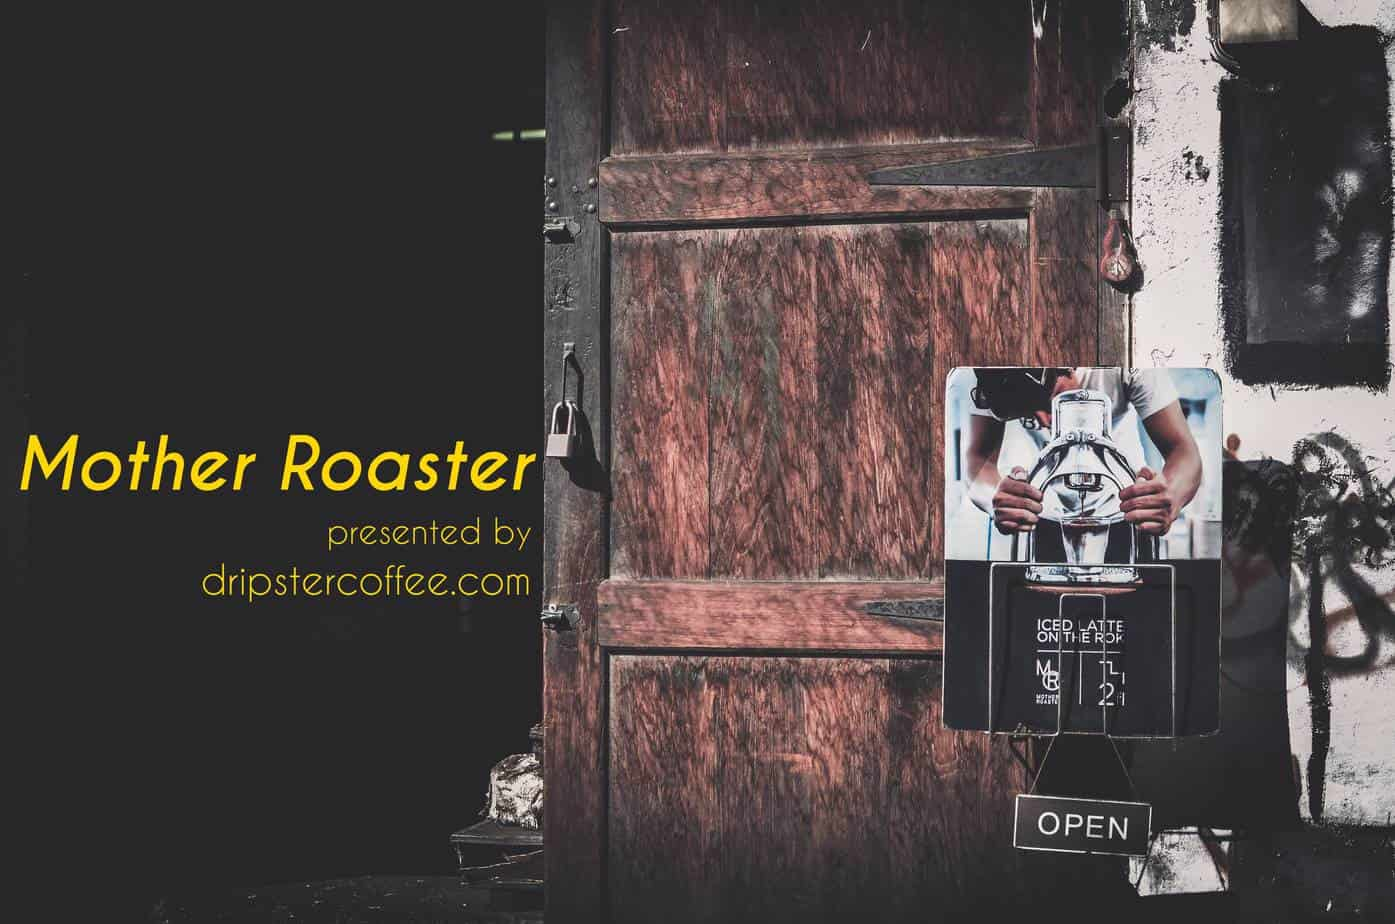 mother roaster cafe